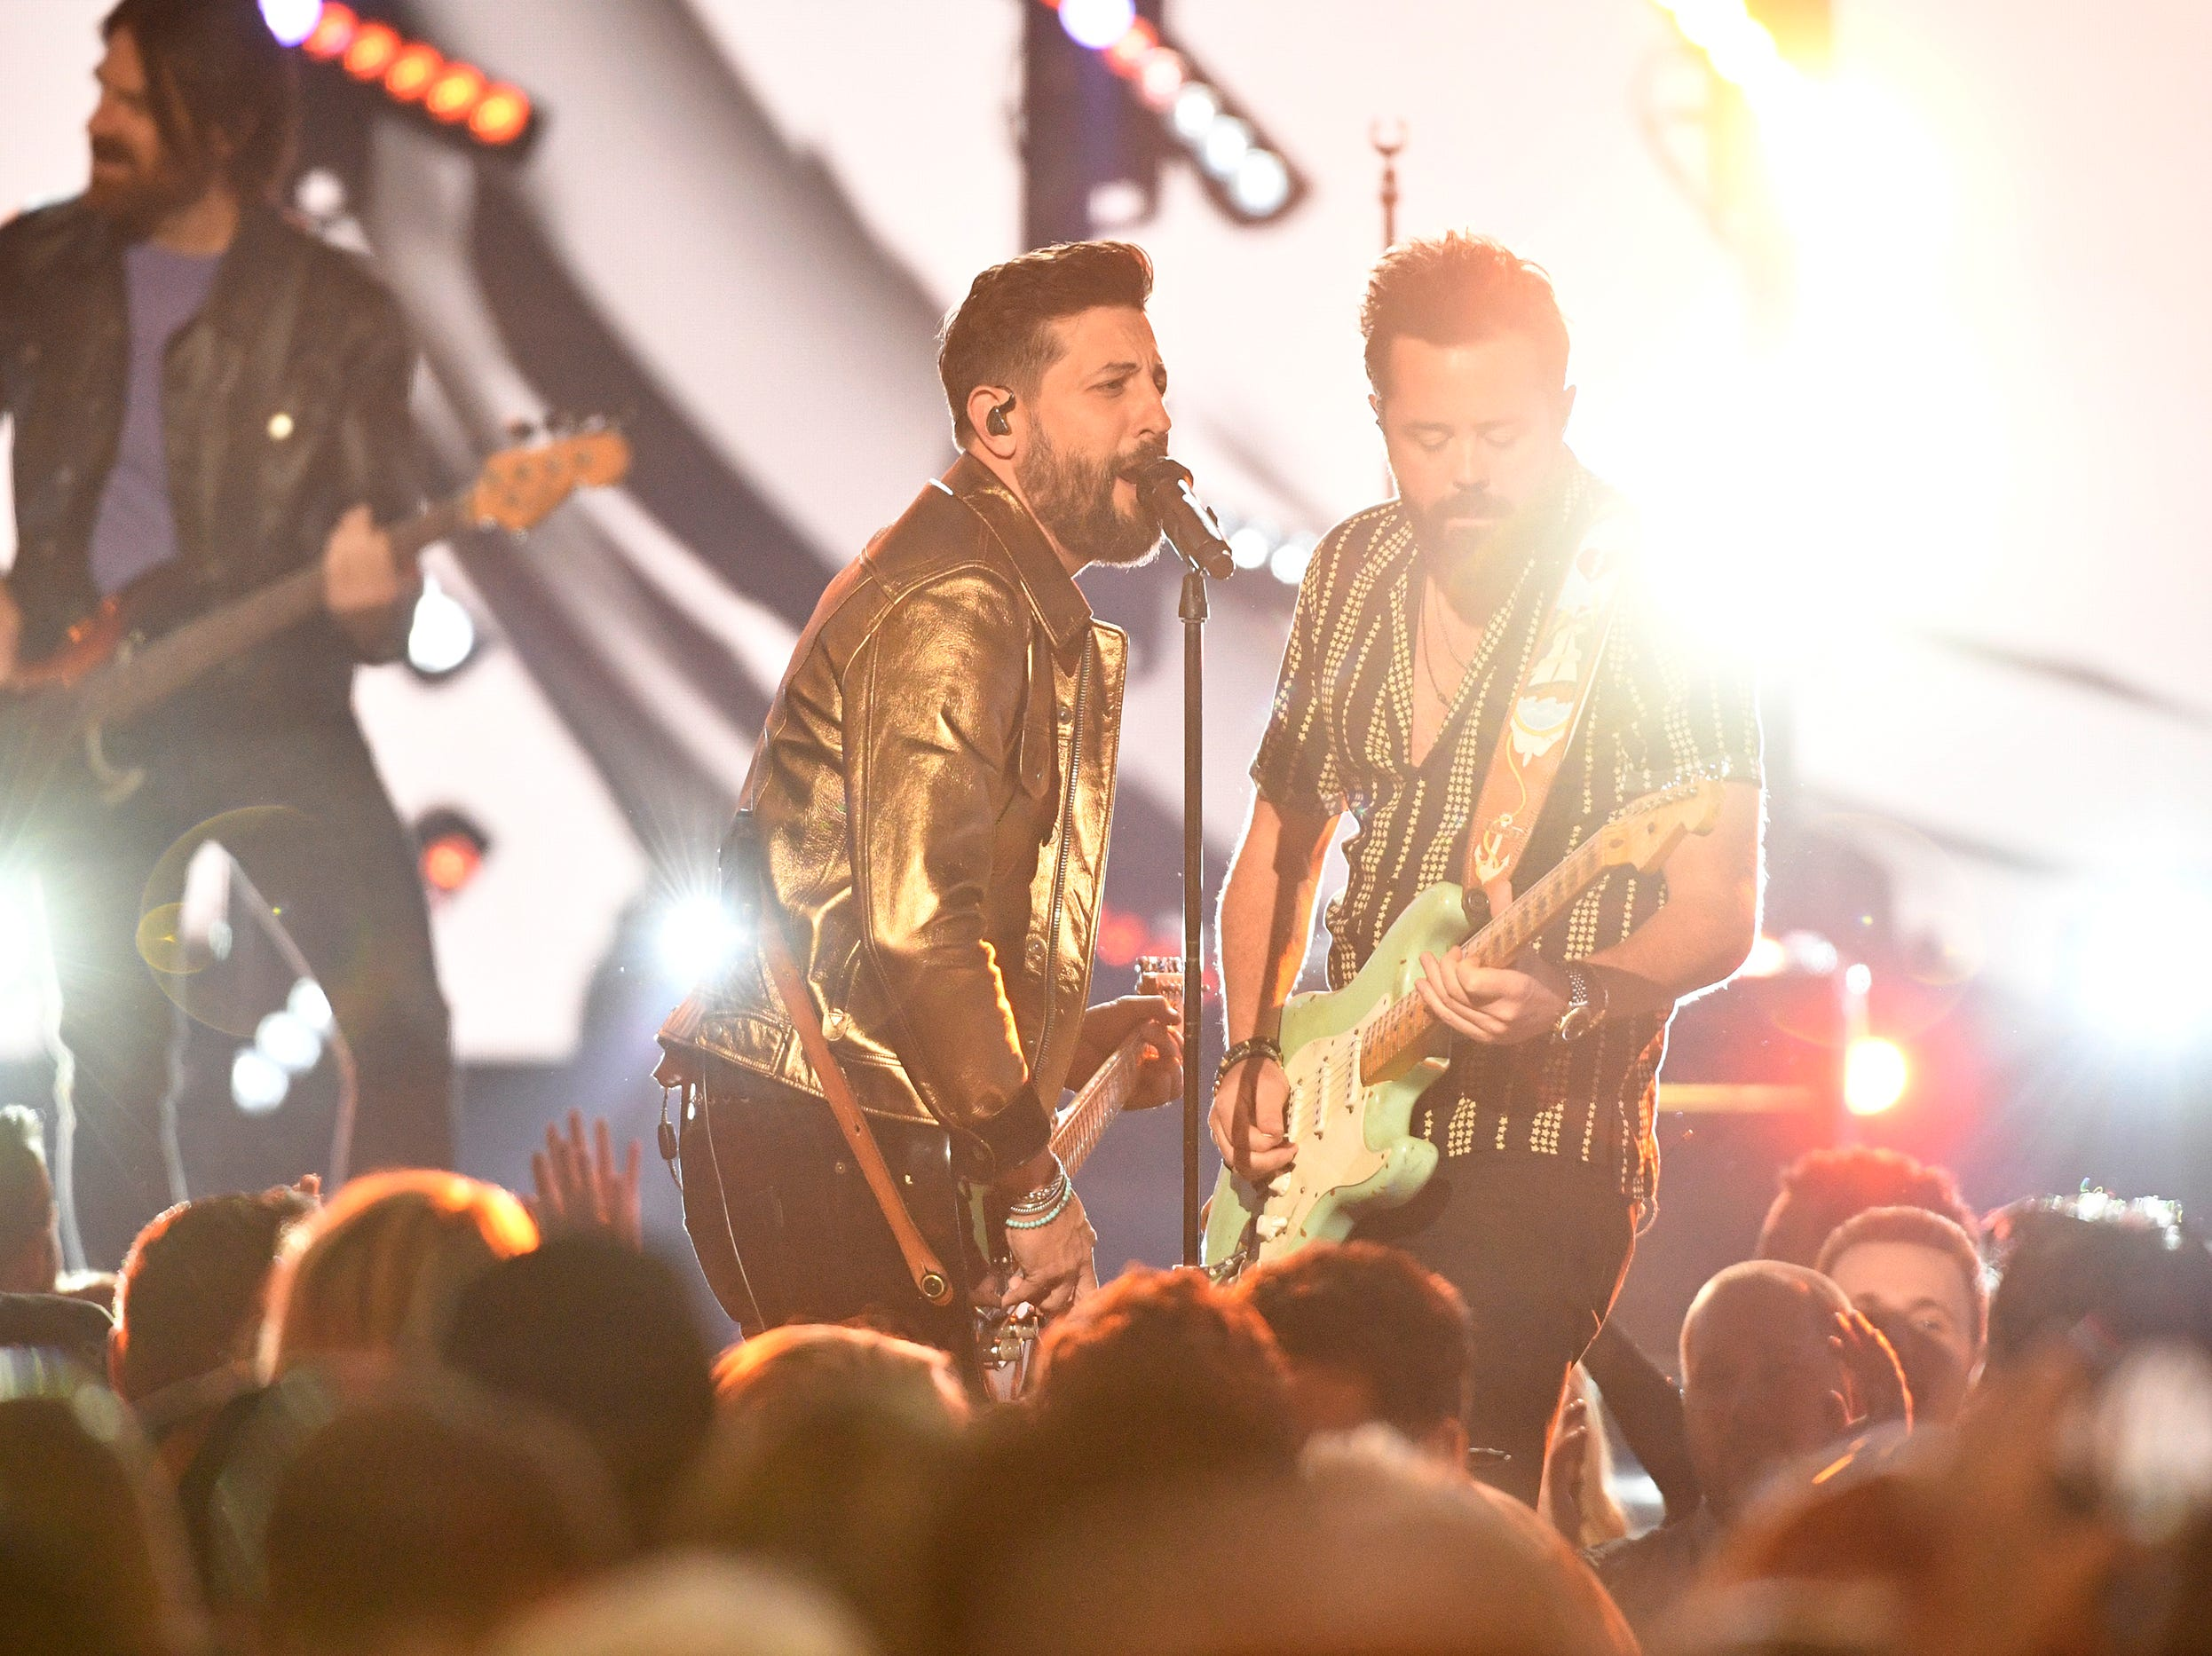 Matthew Ramsey, left, and Brad Tursi of Old Dominion, perform during the 54TH Academy of Country Music Awards Sunday, April 7, 2019, in Las Vegas, Nev.